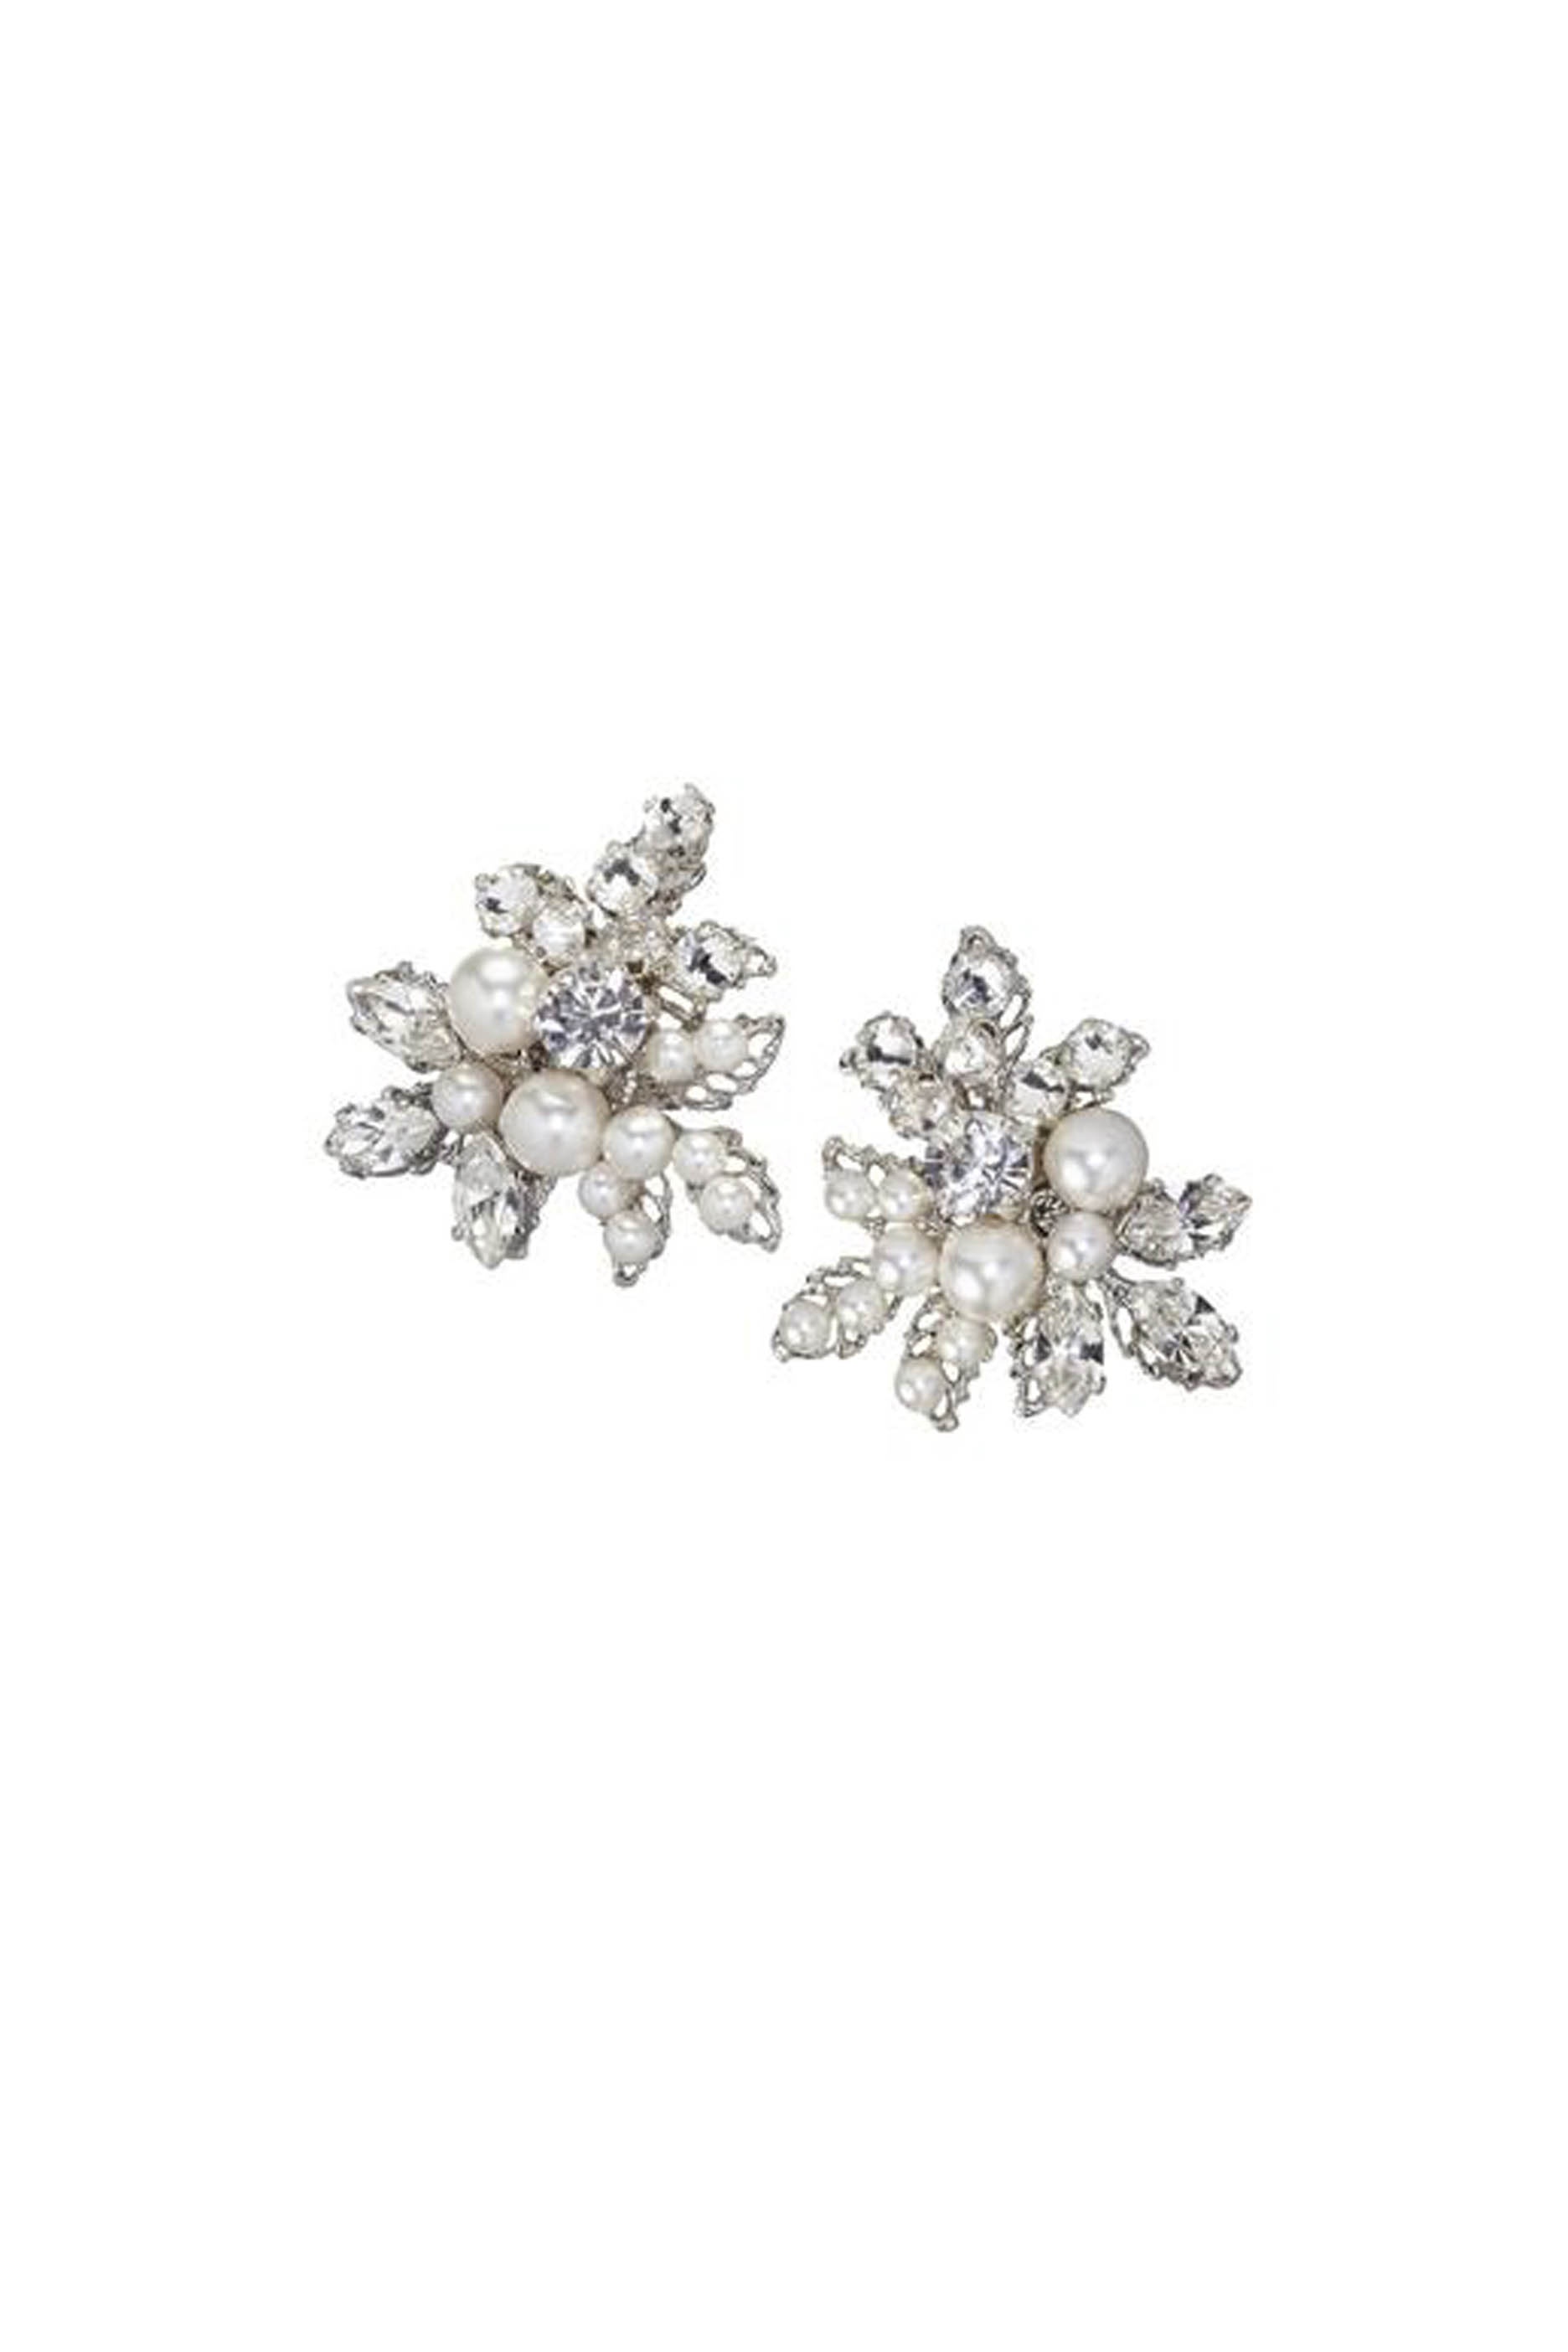 [SELL][Corsage Stud Earrings Silver]by ElizabethBower